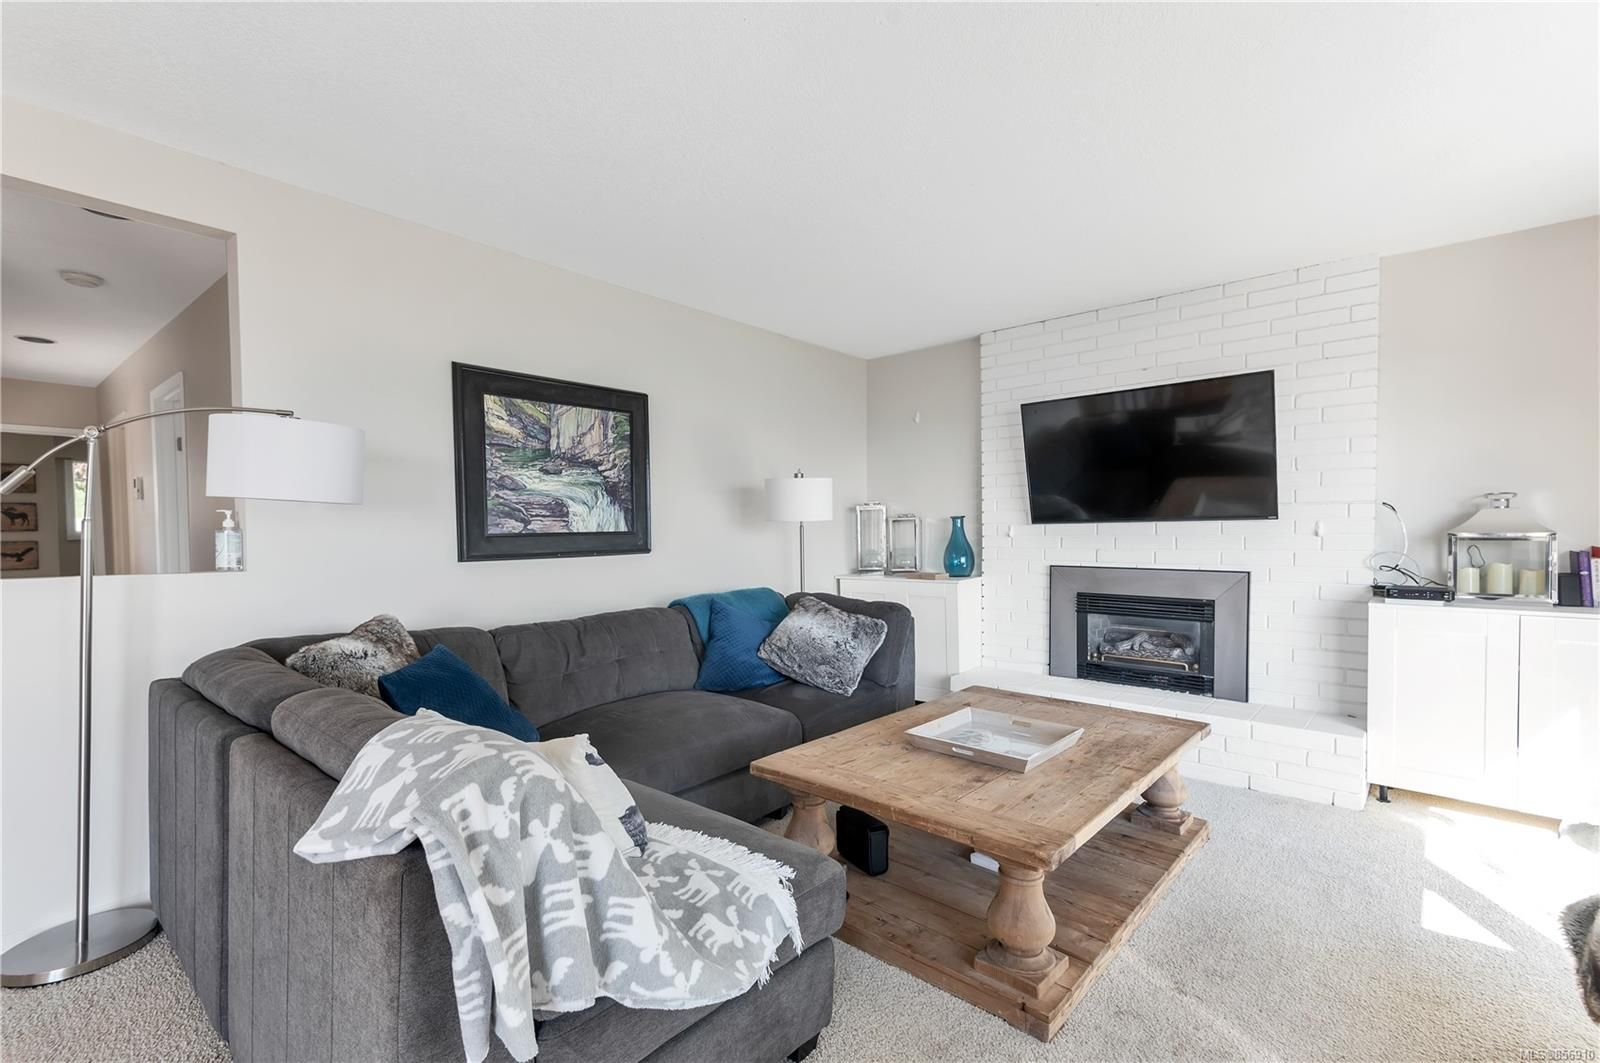 Photo 9: Photos: 215 S Alder St in : CR Campbell River Central House for sale (Campbell River)  : MLS®# 856910